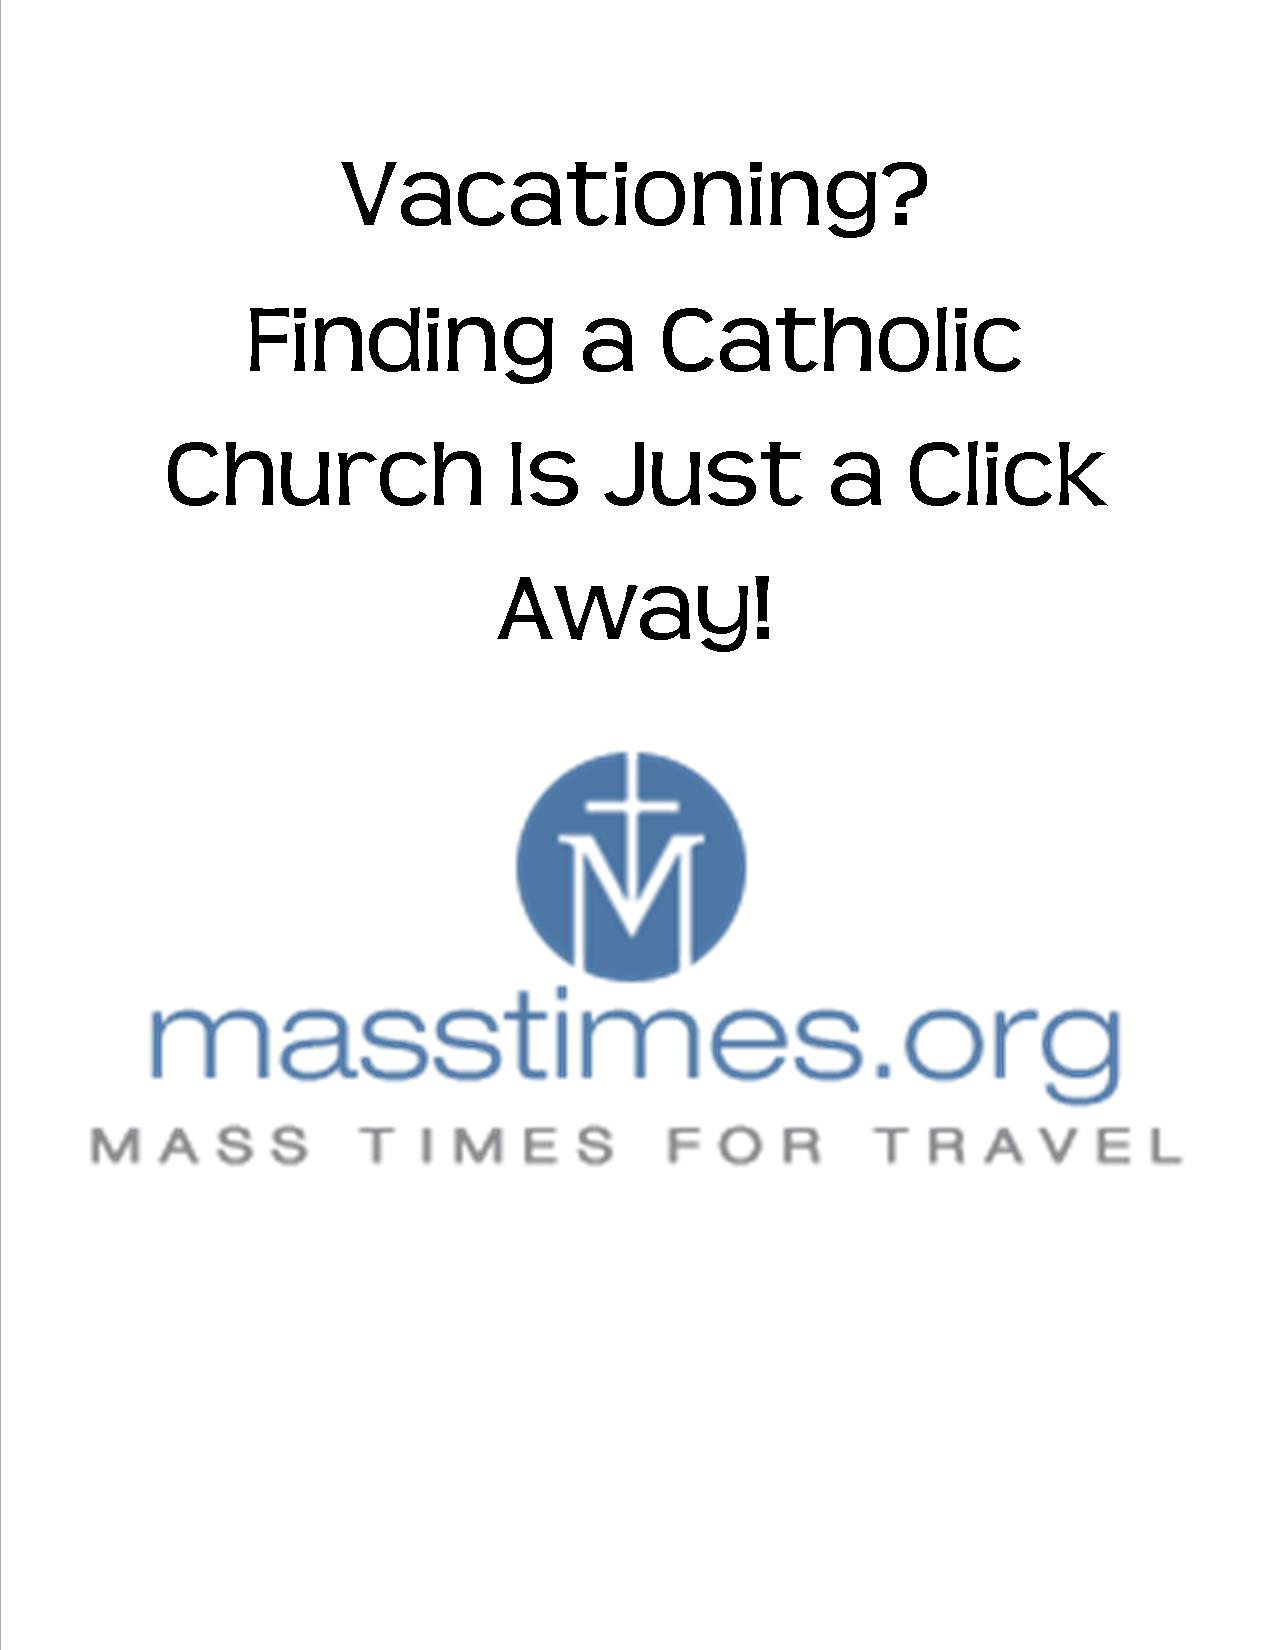 Mass Times for Travel